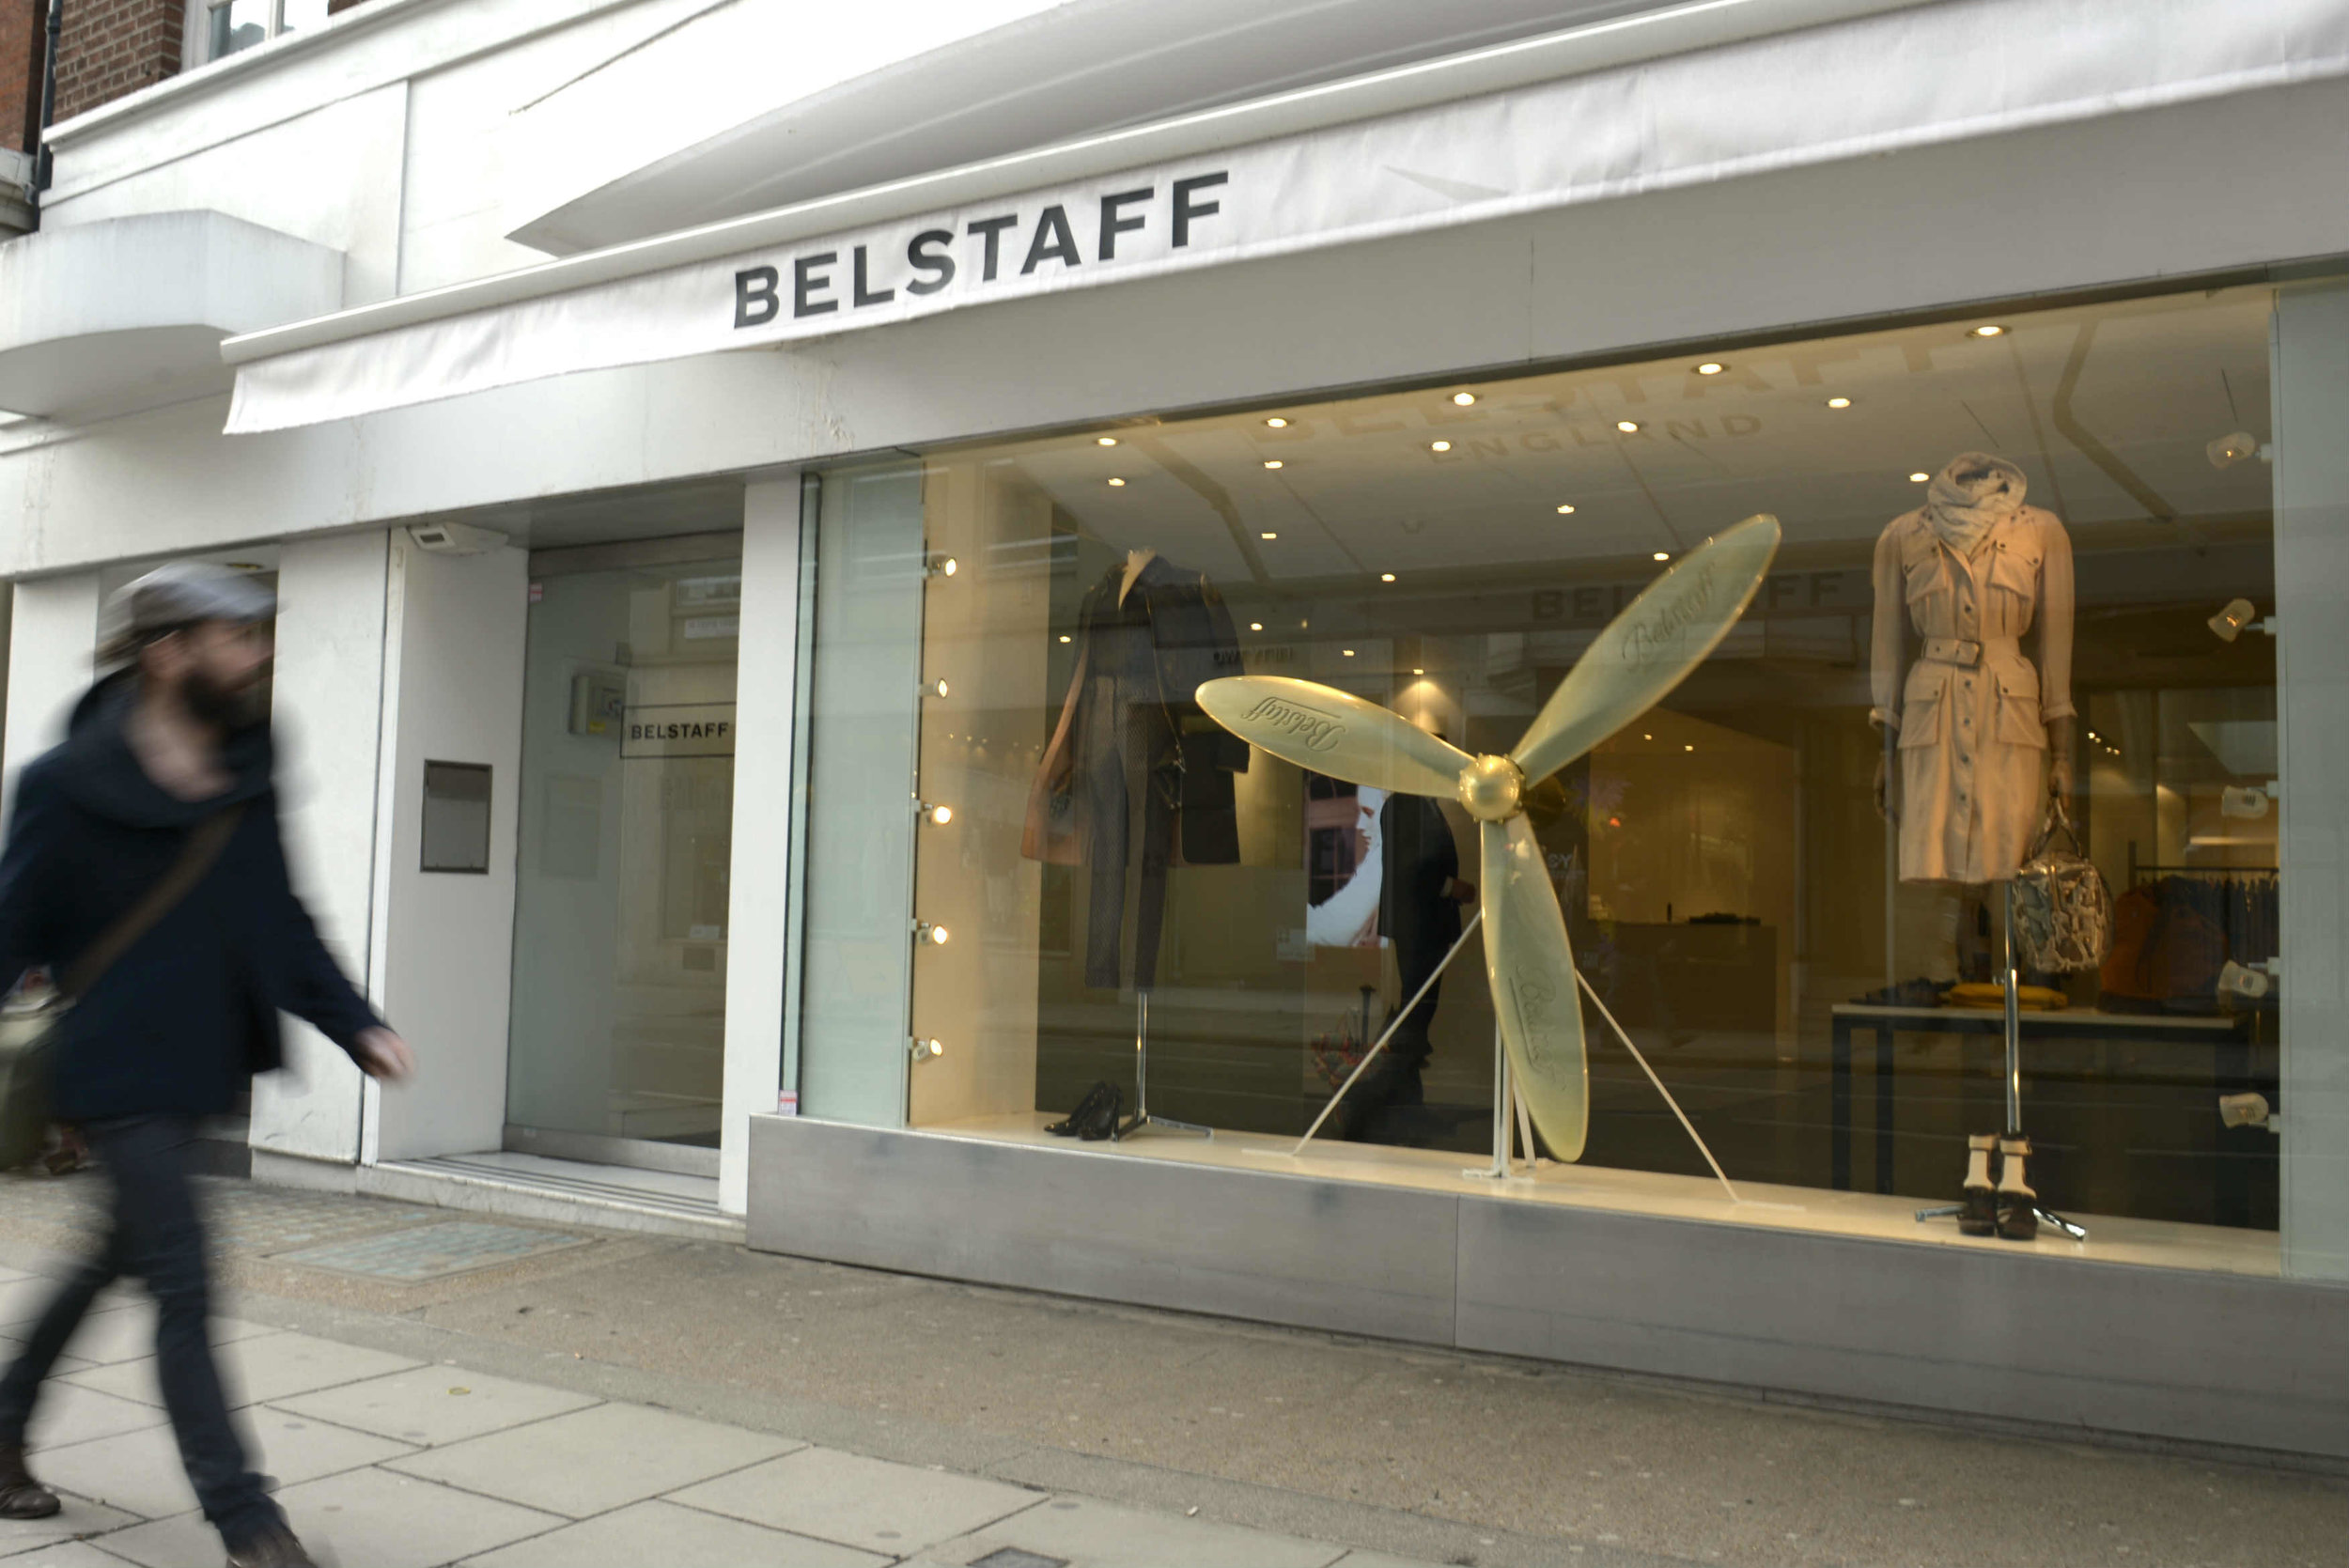 Belstaff_fashion_shopfront_PA-paid-1.jpg